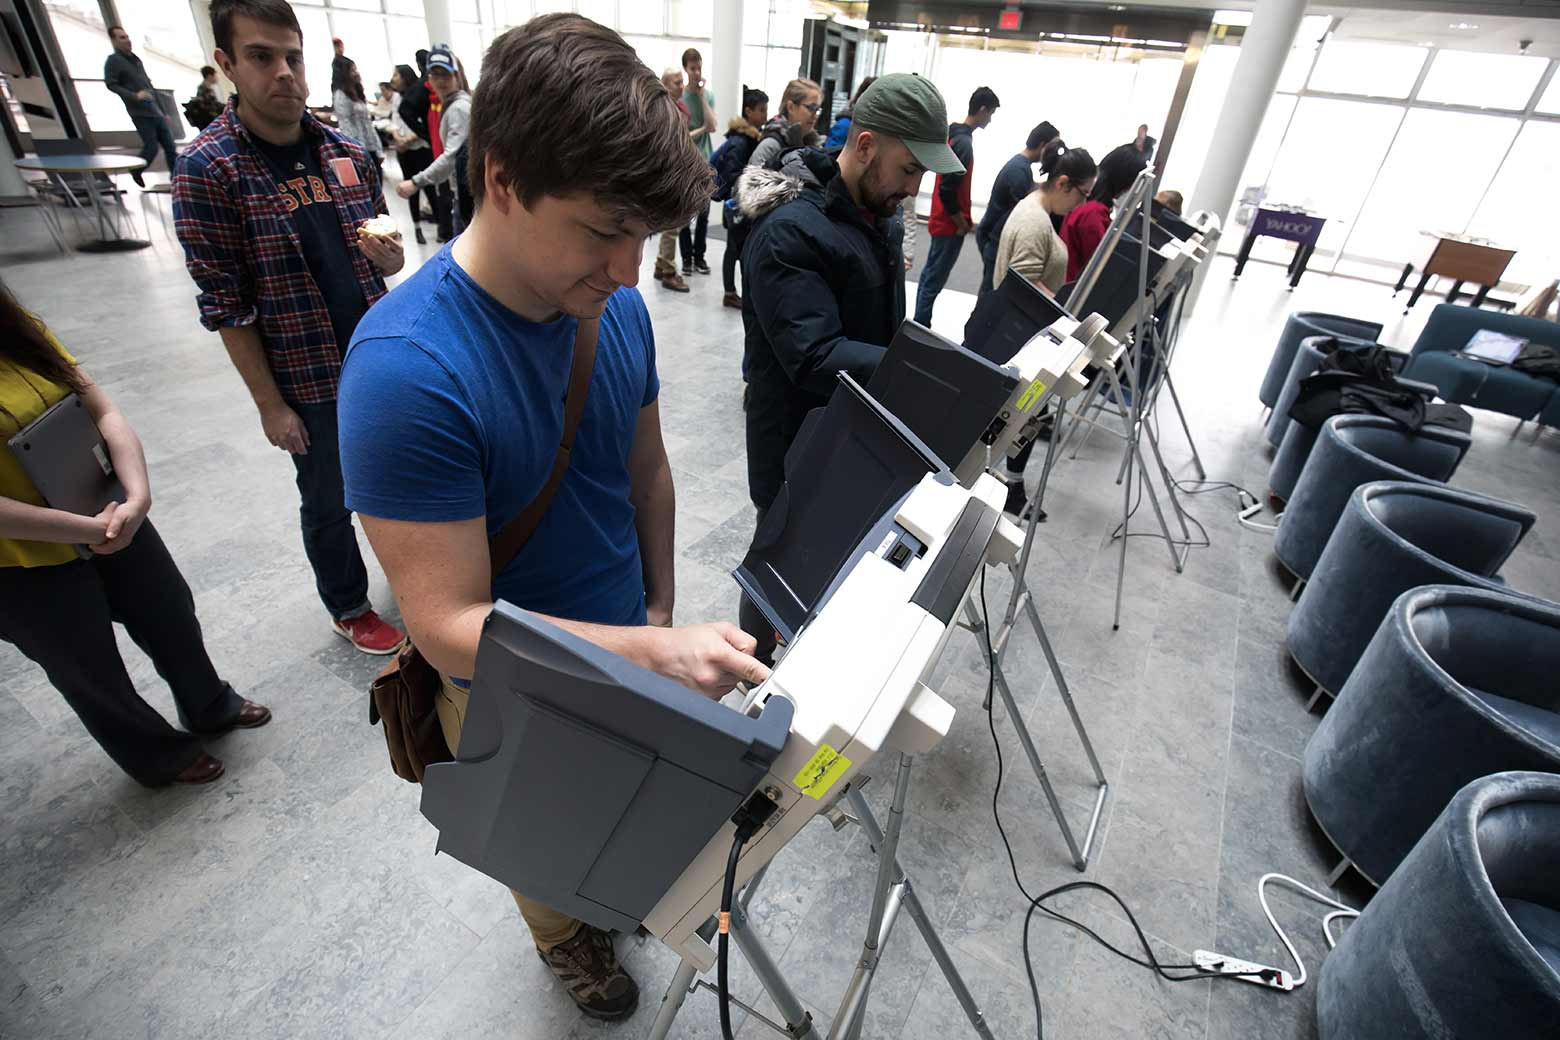 student voting at voting machine